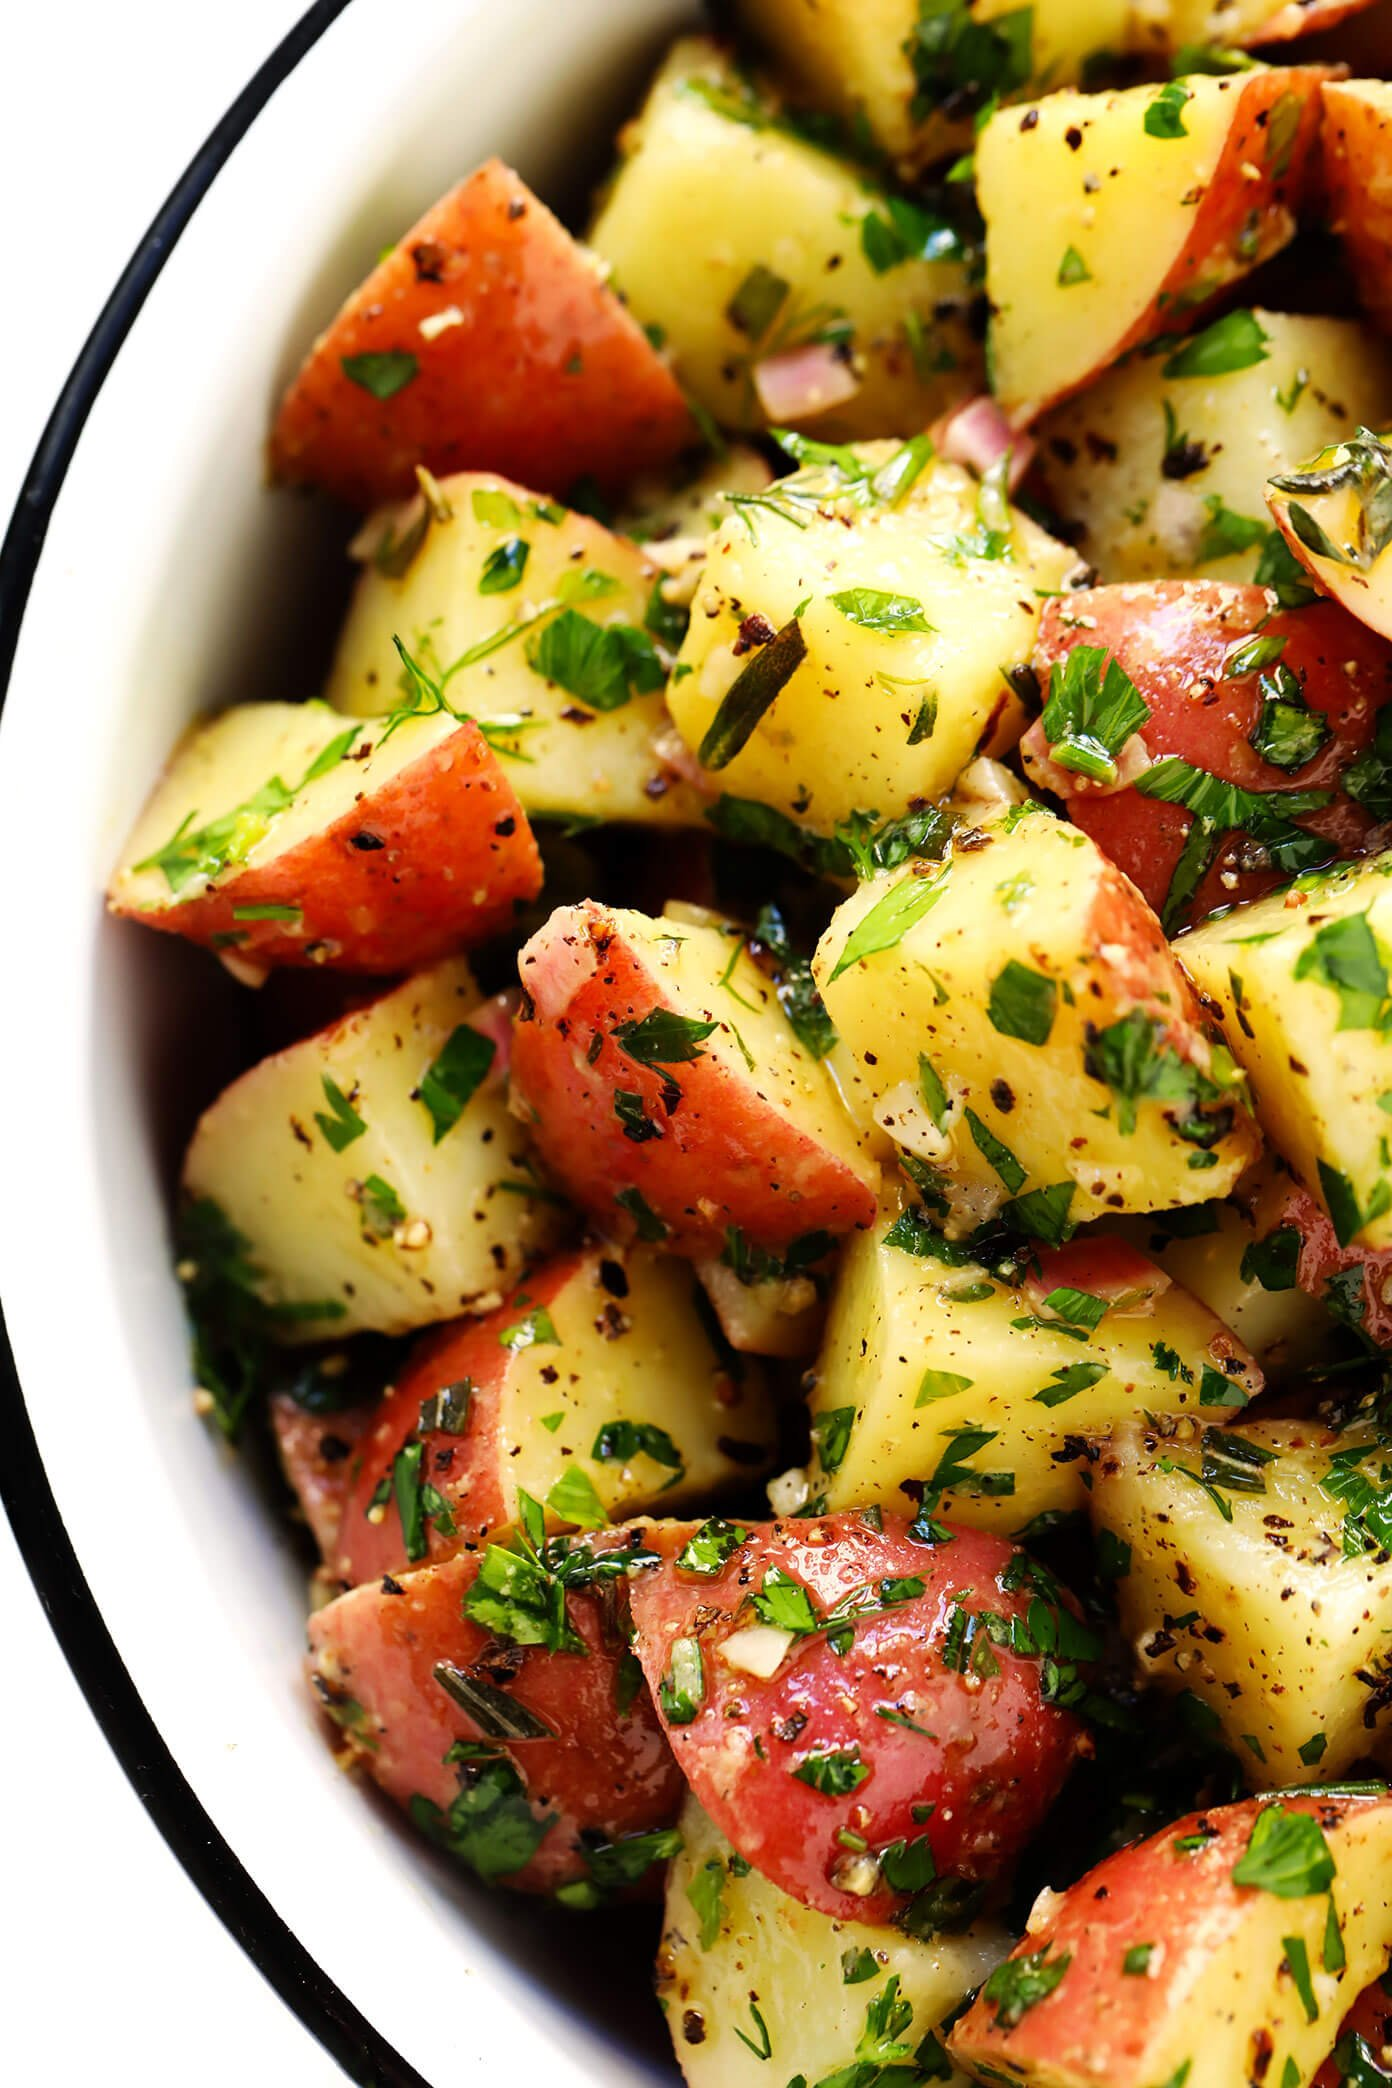 French Potato Salad Recipe with Lemon and Herbs